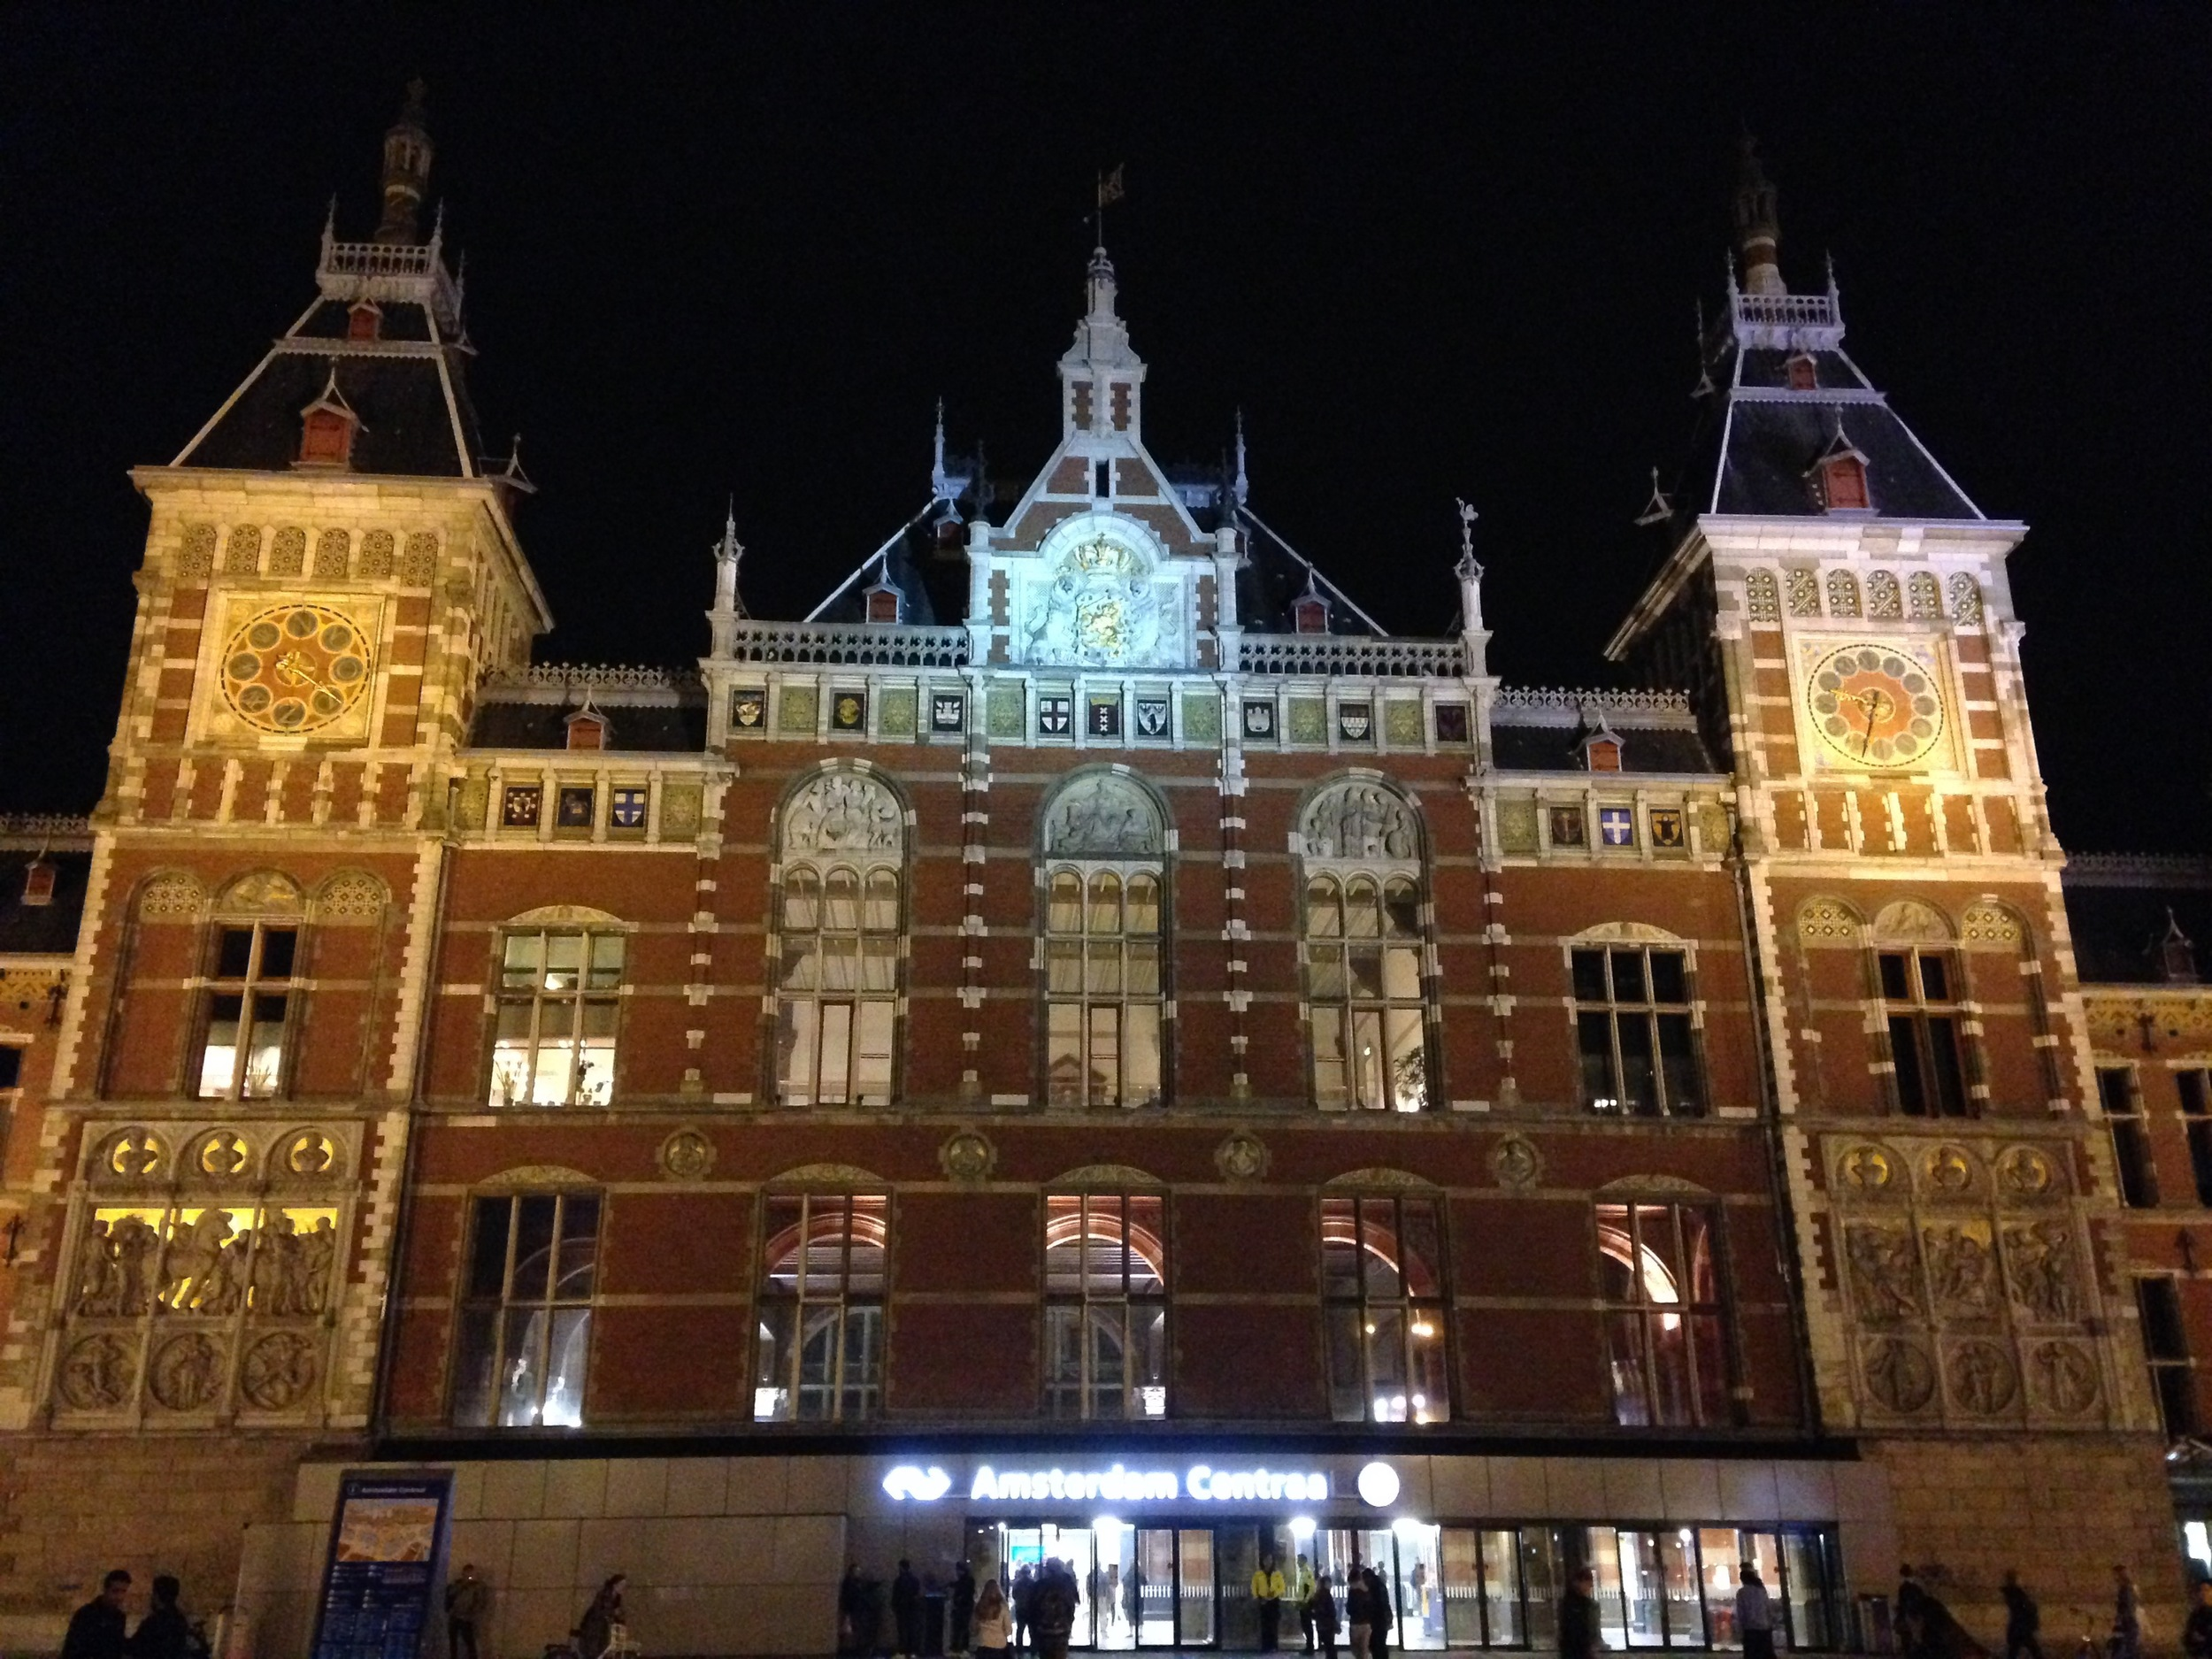 The train station was imposing during the daytime, but once it was night and all lit up, it was positively stunning!